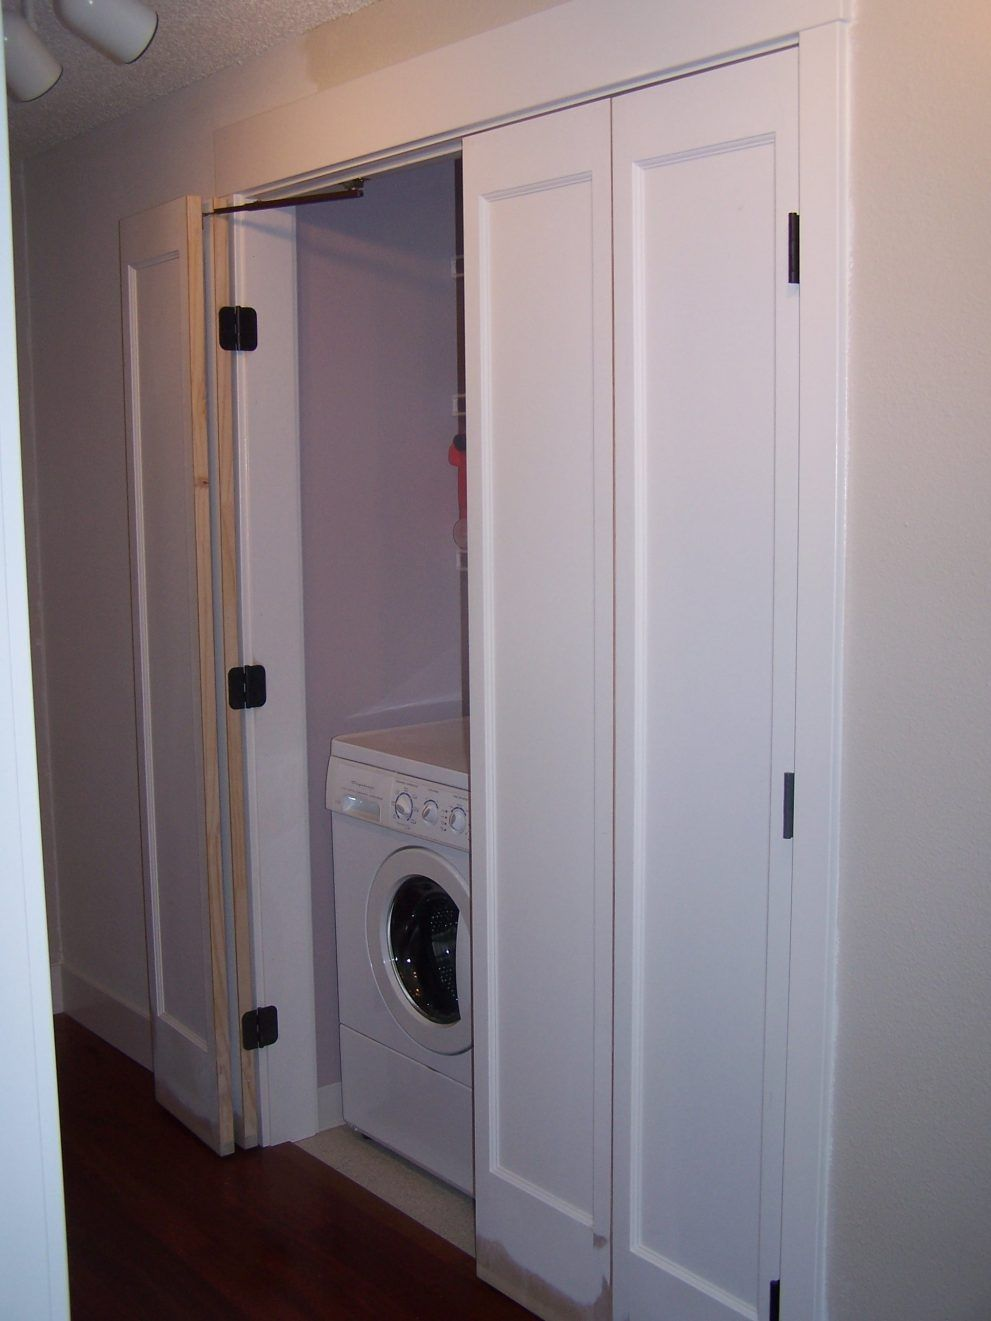 Gorgeous Laundry Closet Door Options 52 Intended For Dimensions 991 X 1321 Sliding Doors Or Byp